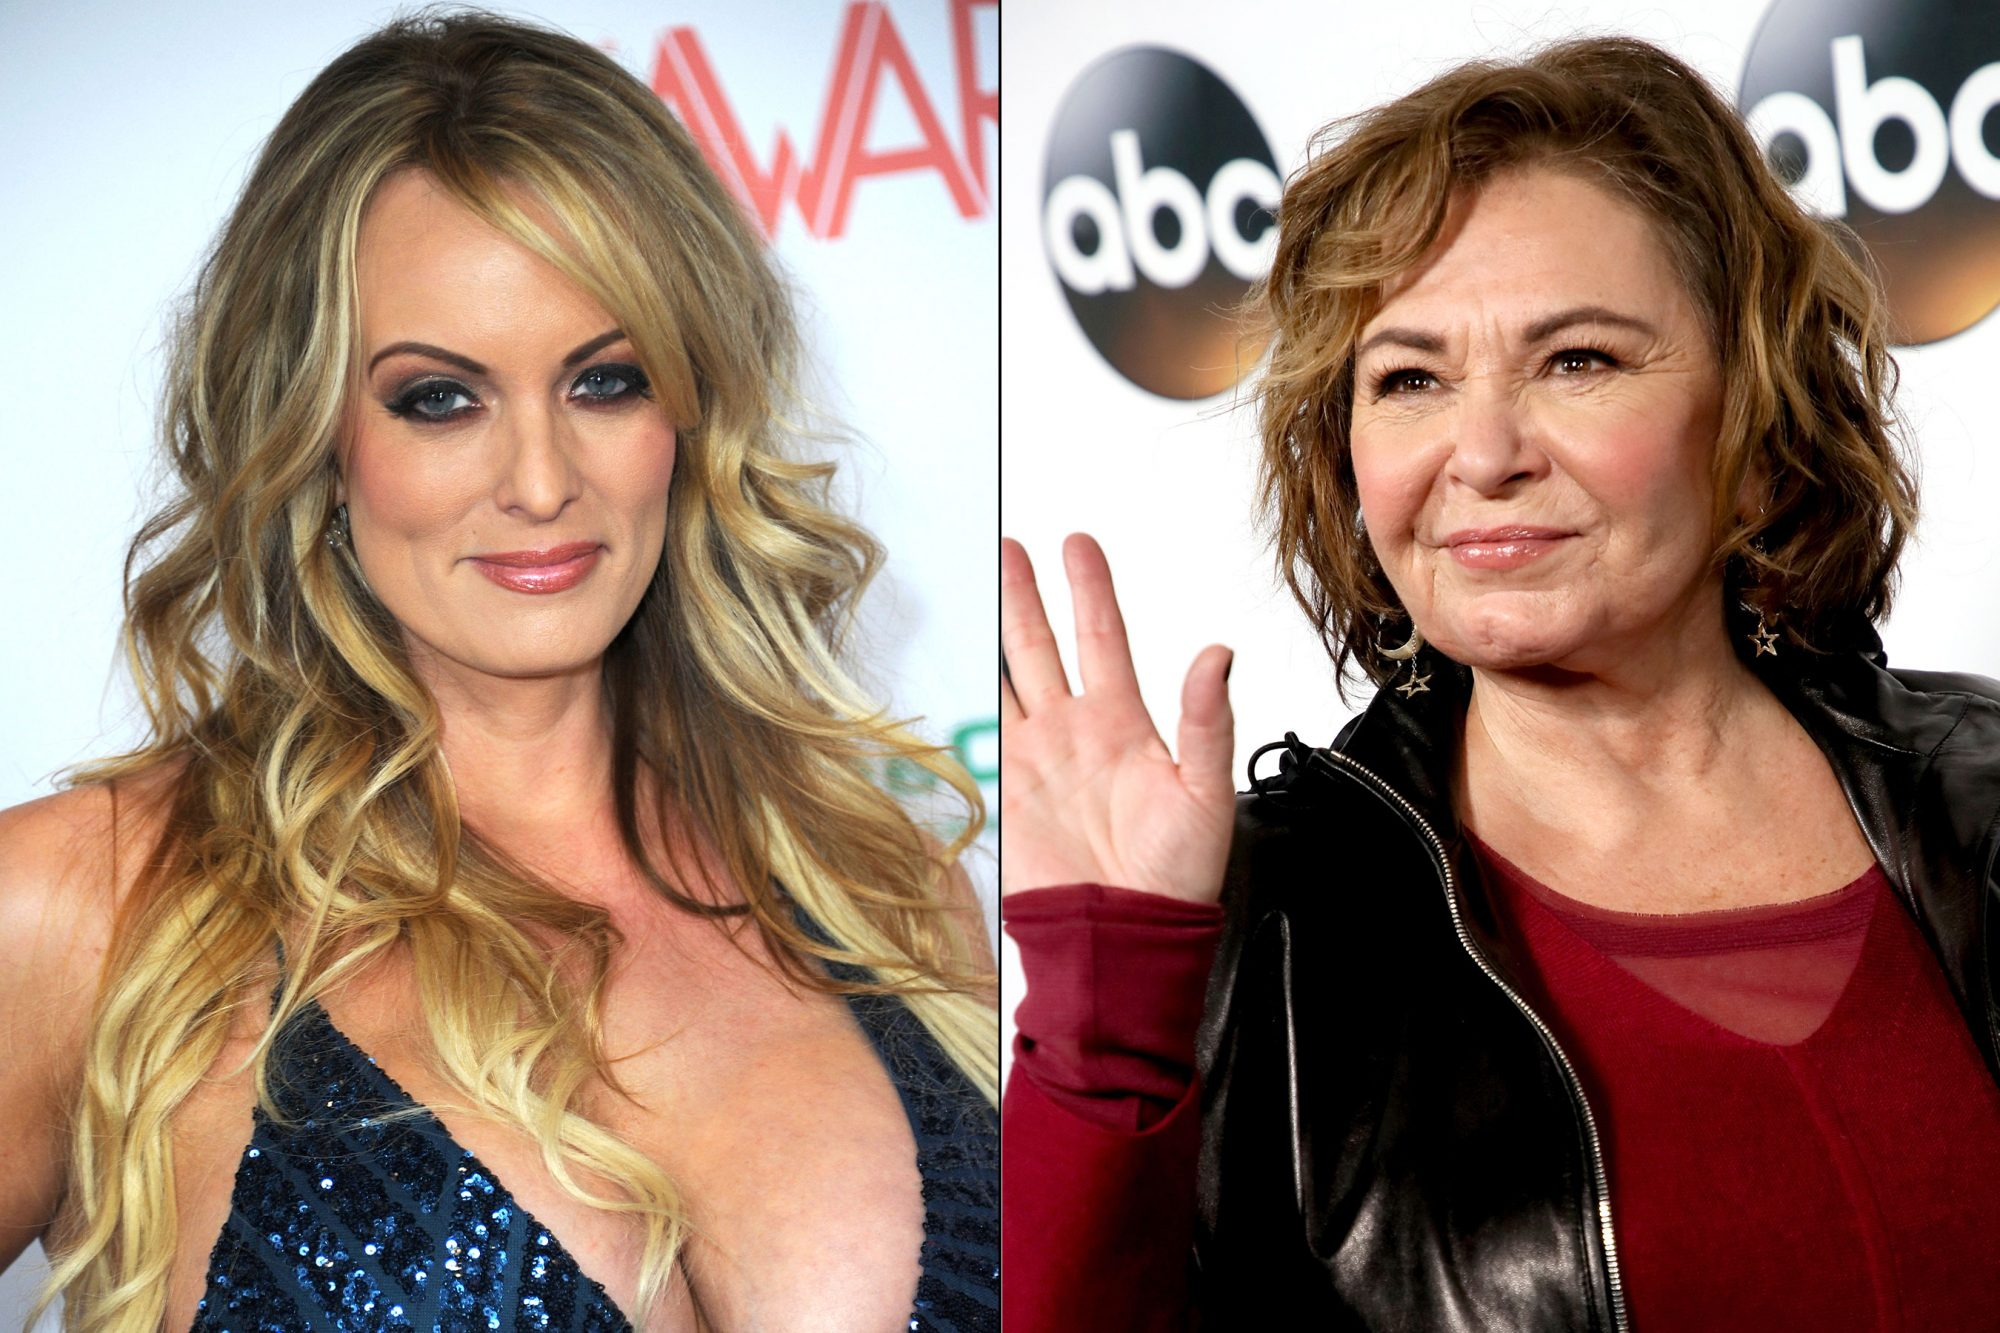 Actor Porno Madonna Sorry roseanne gets into feud with stormy daniels about anal sex